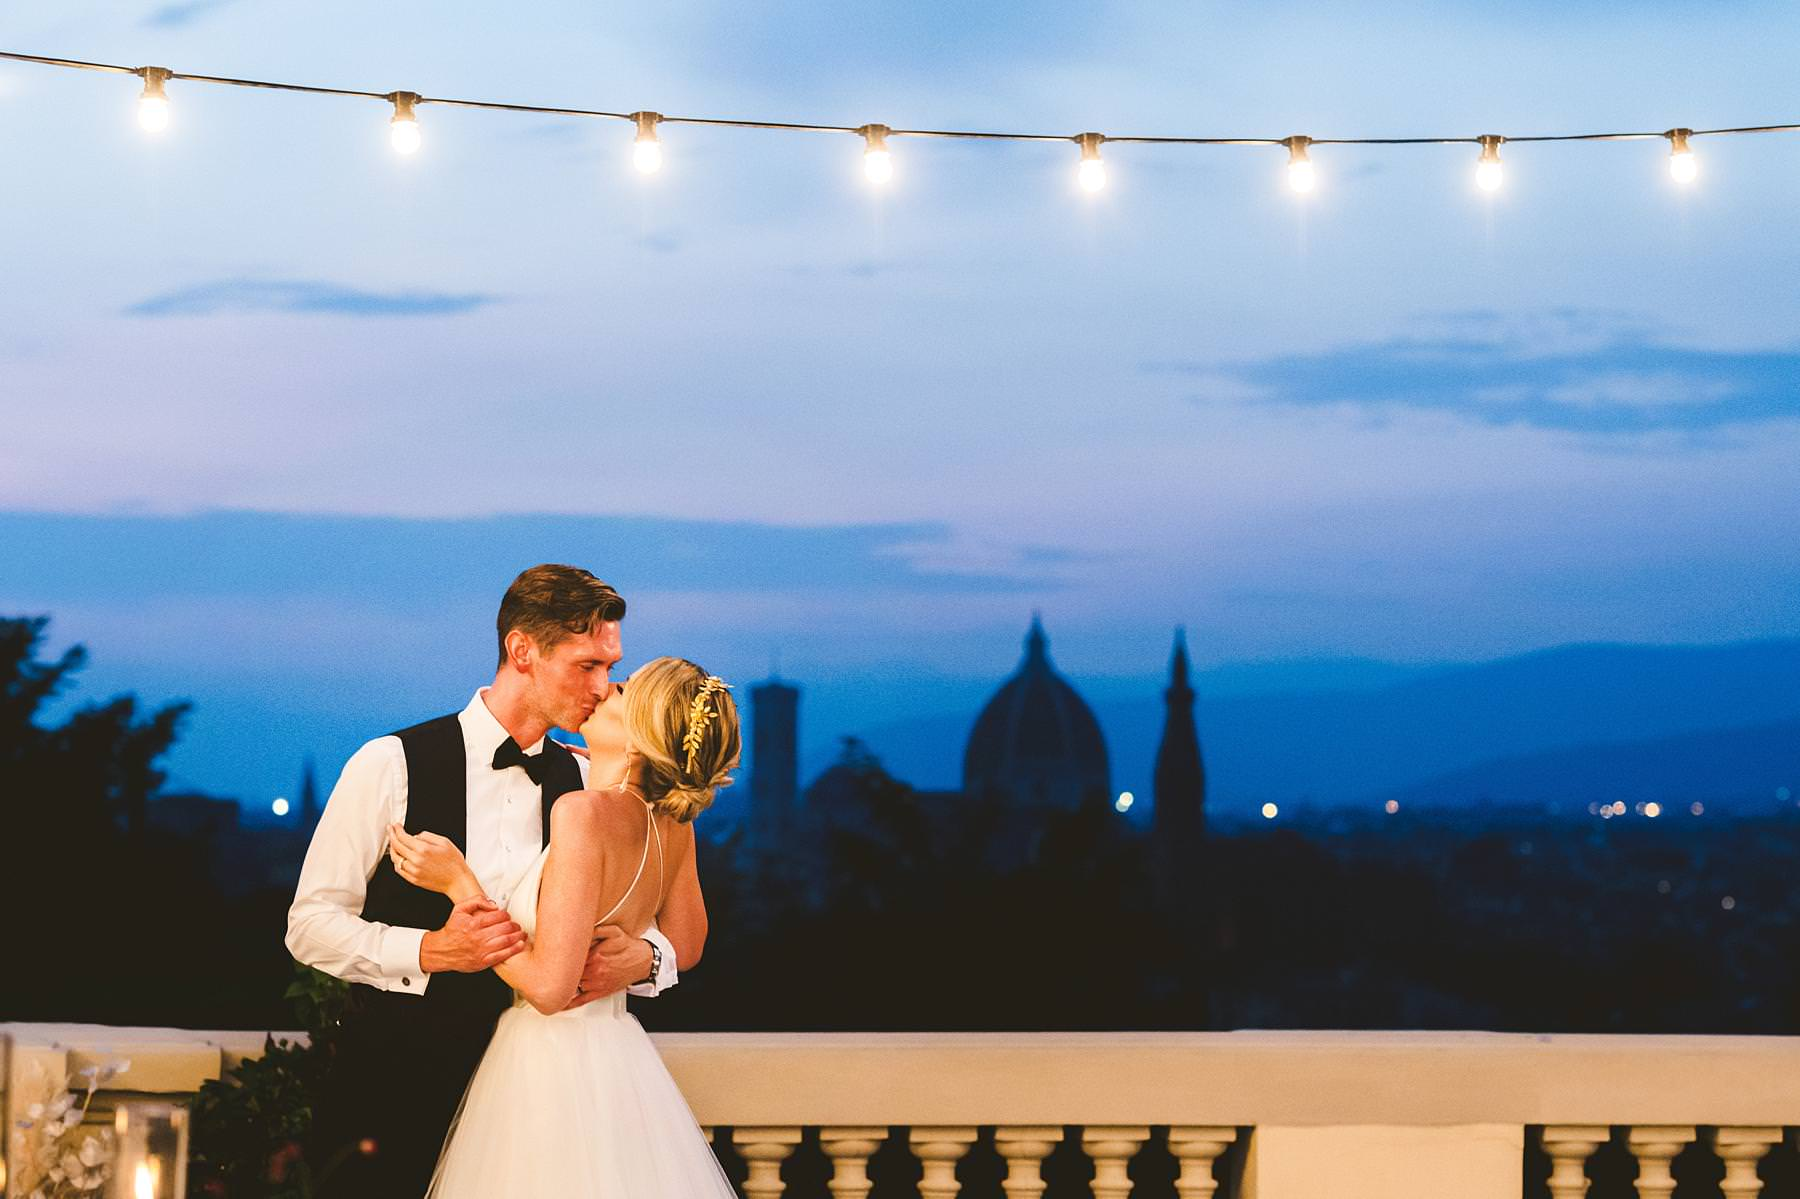 Villa La Vedetta, Florence. Fall in love with the view. Bride and groom first dance